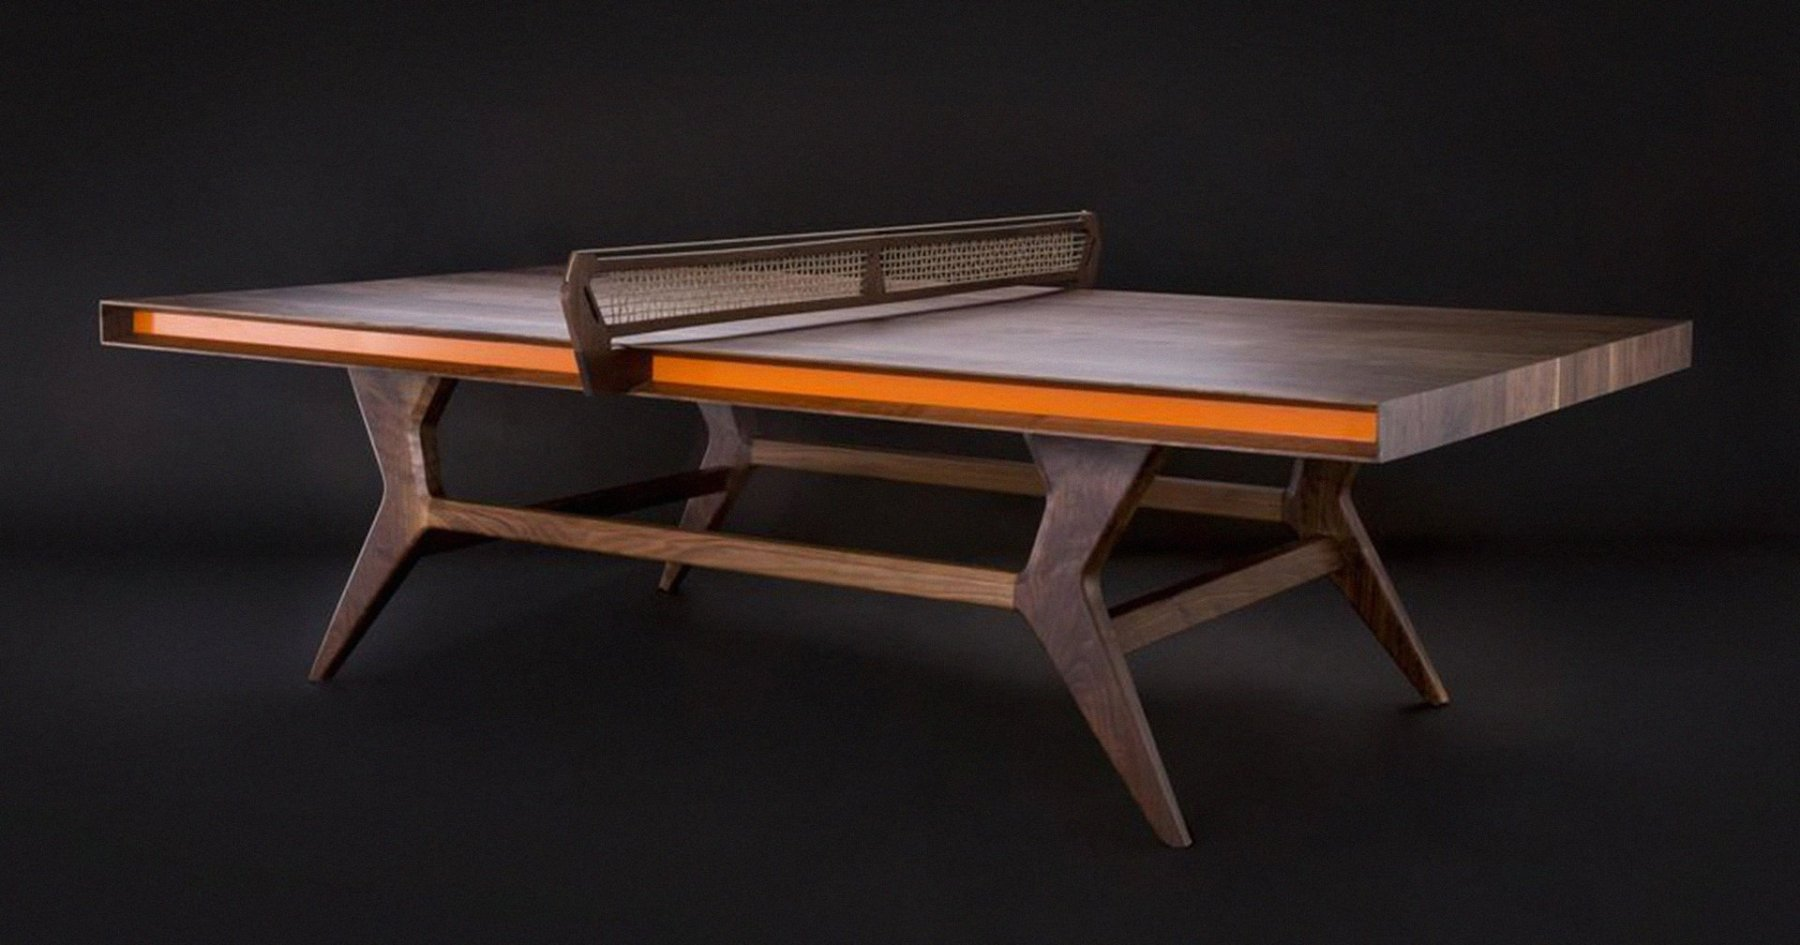 Strange 13 Items Thatll Turn Your Man Cave Into A Proper Den Ocoug Best Dining Table And Chair Ideas Images Ocougorg